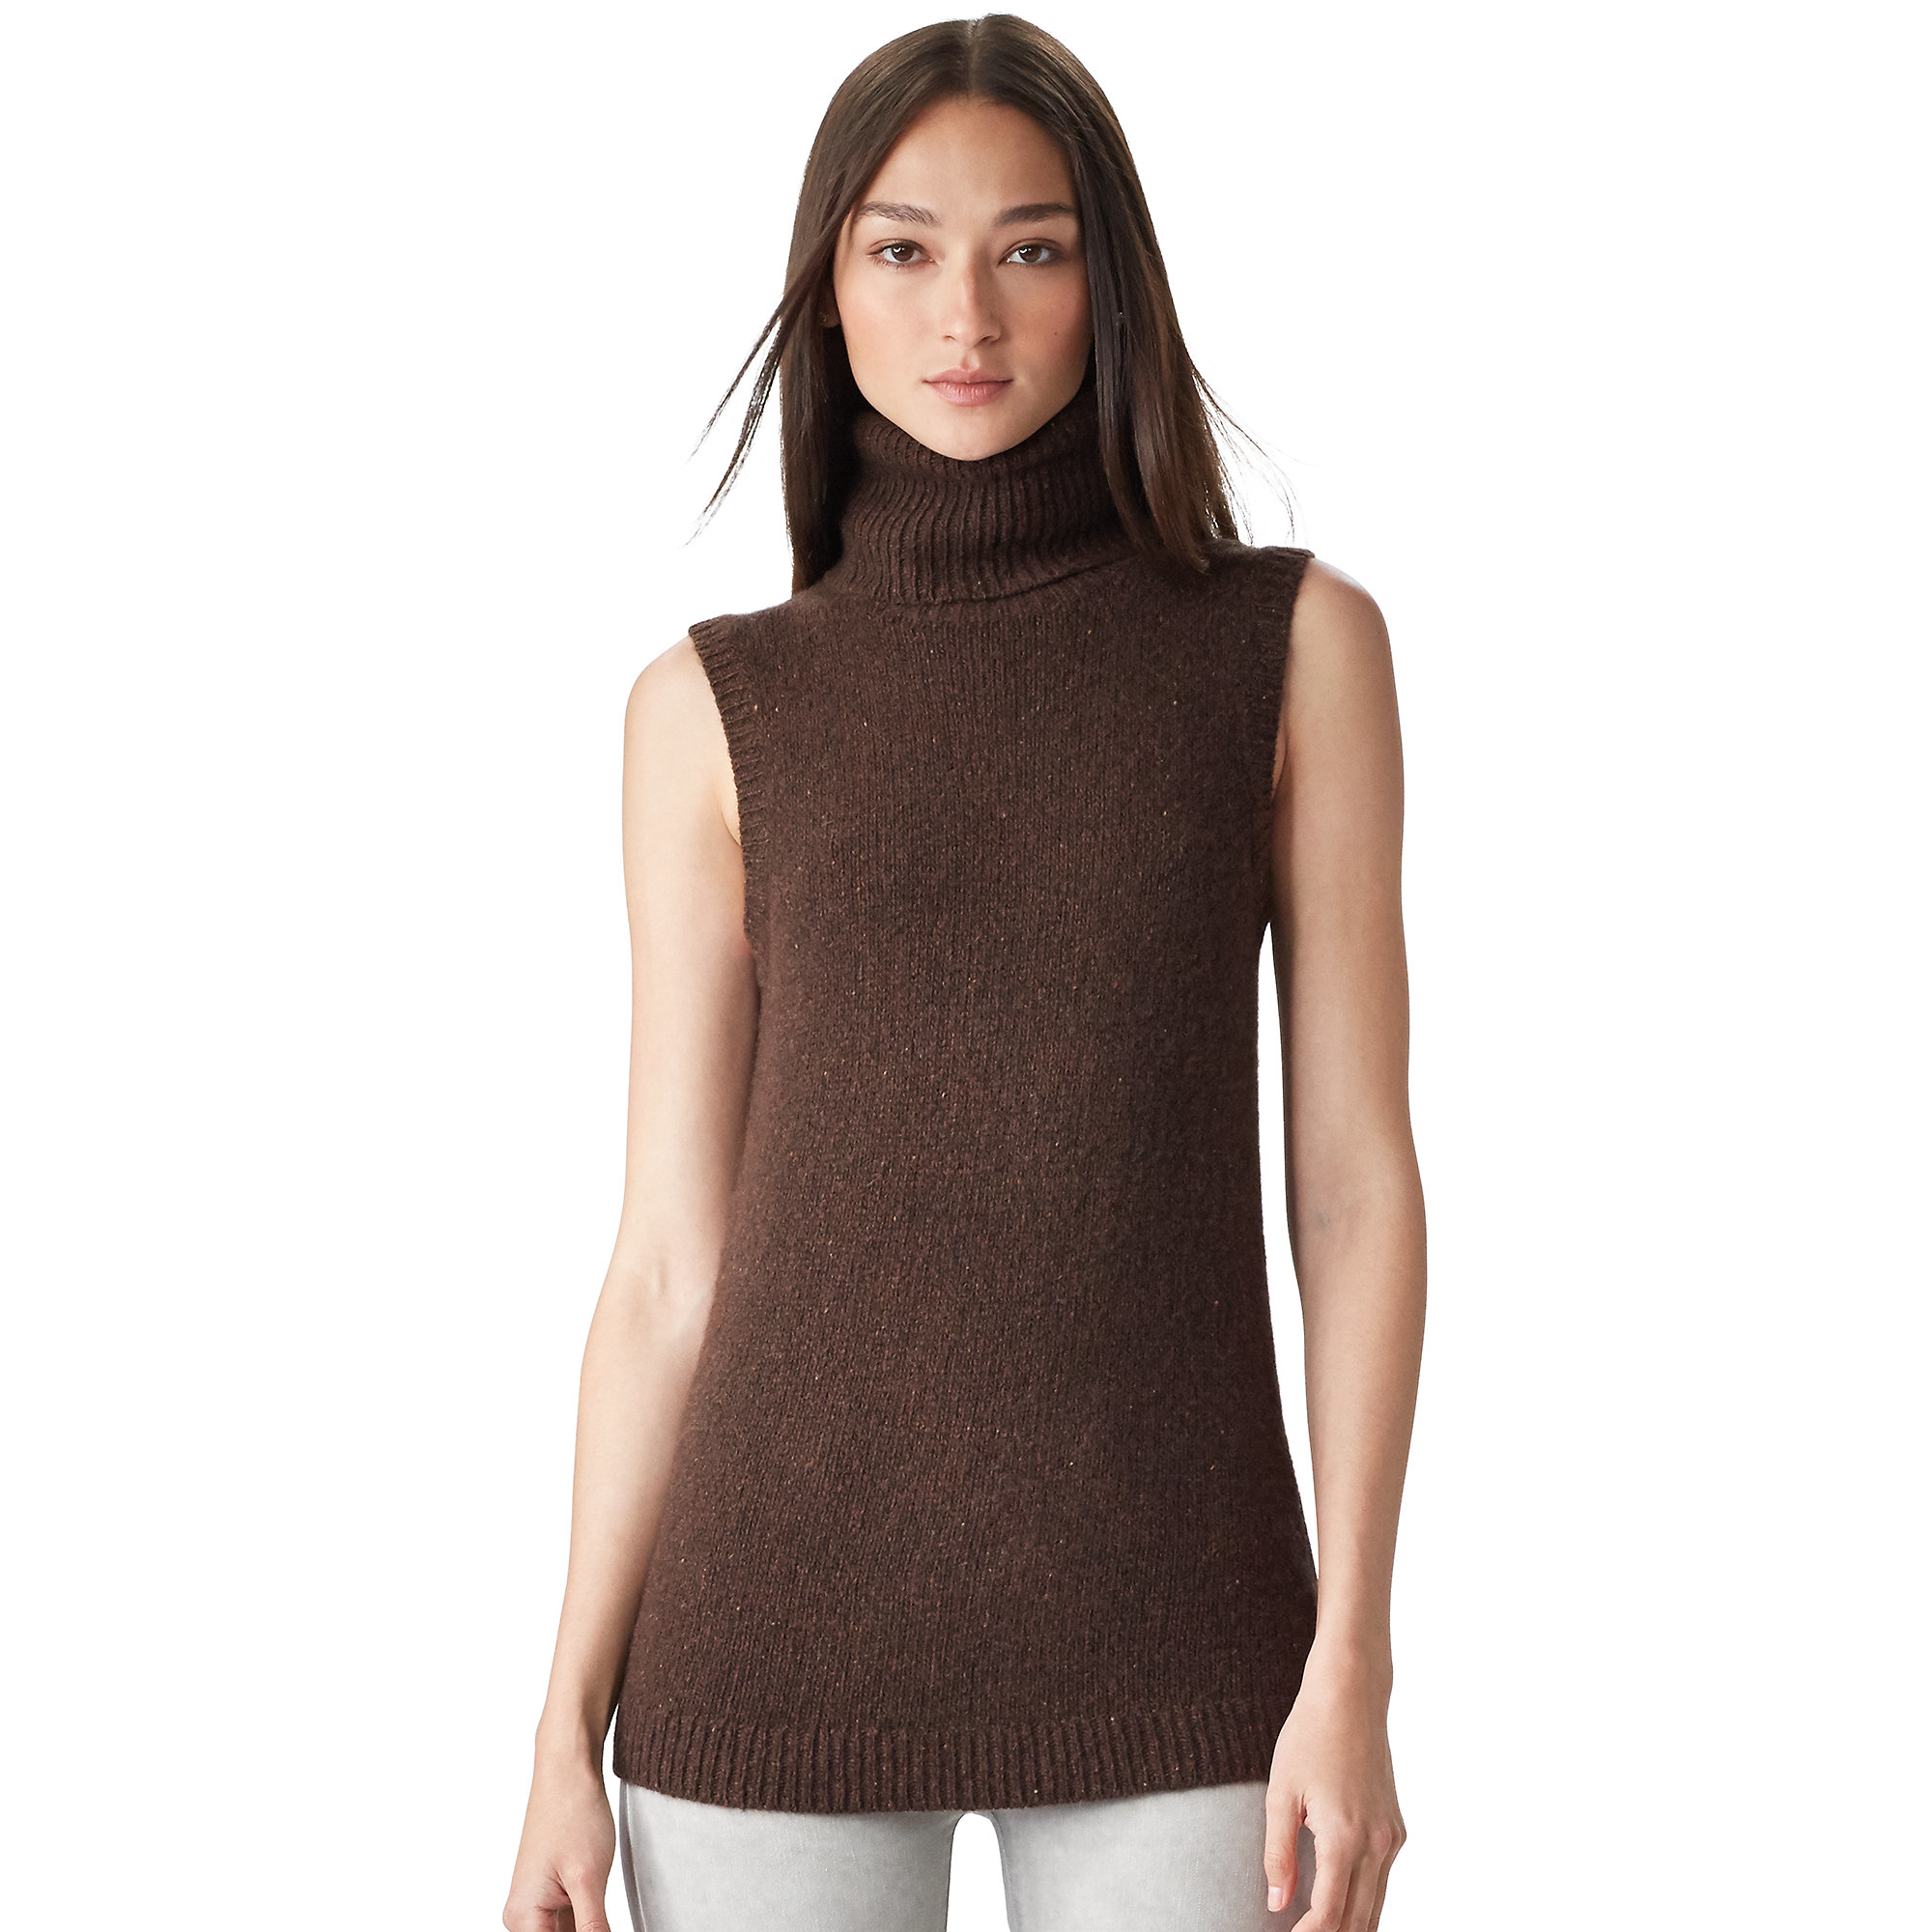 Ralph lauren black label Cashmere Sleeveless Sweater in Brown | Lyst